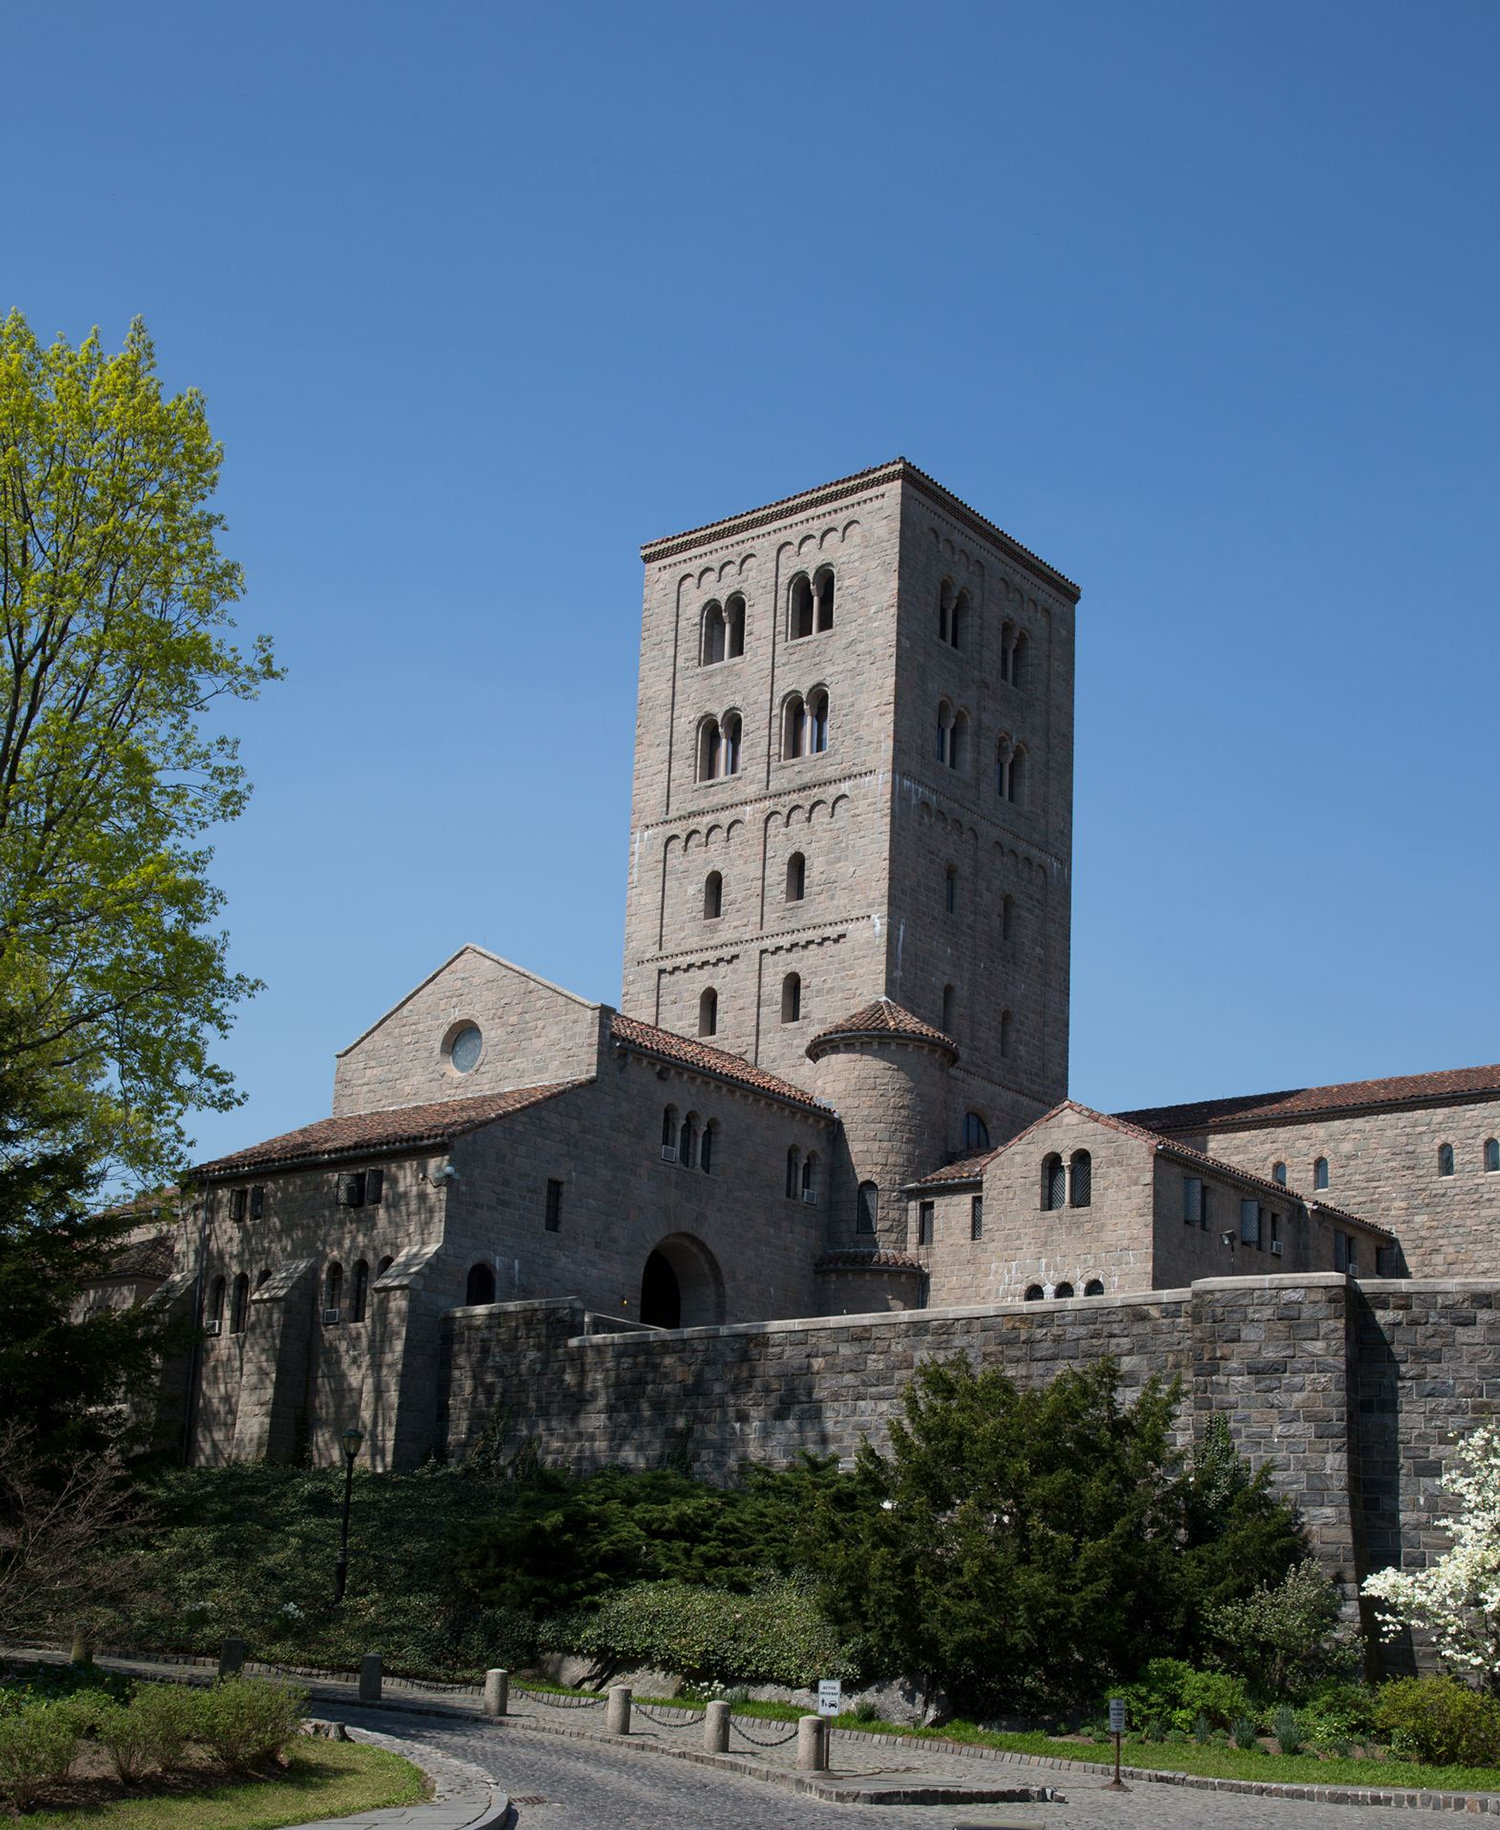 Figure 7: The Cloisters is the branch of the Metropolitan Museum devoted to the art and architecture of the Middle Ages. Image © The Metropolitan Museum of Art, New York.